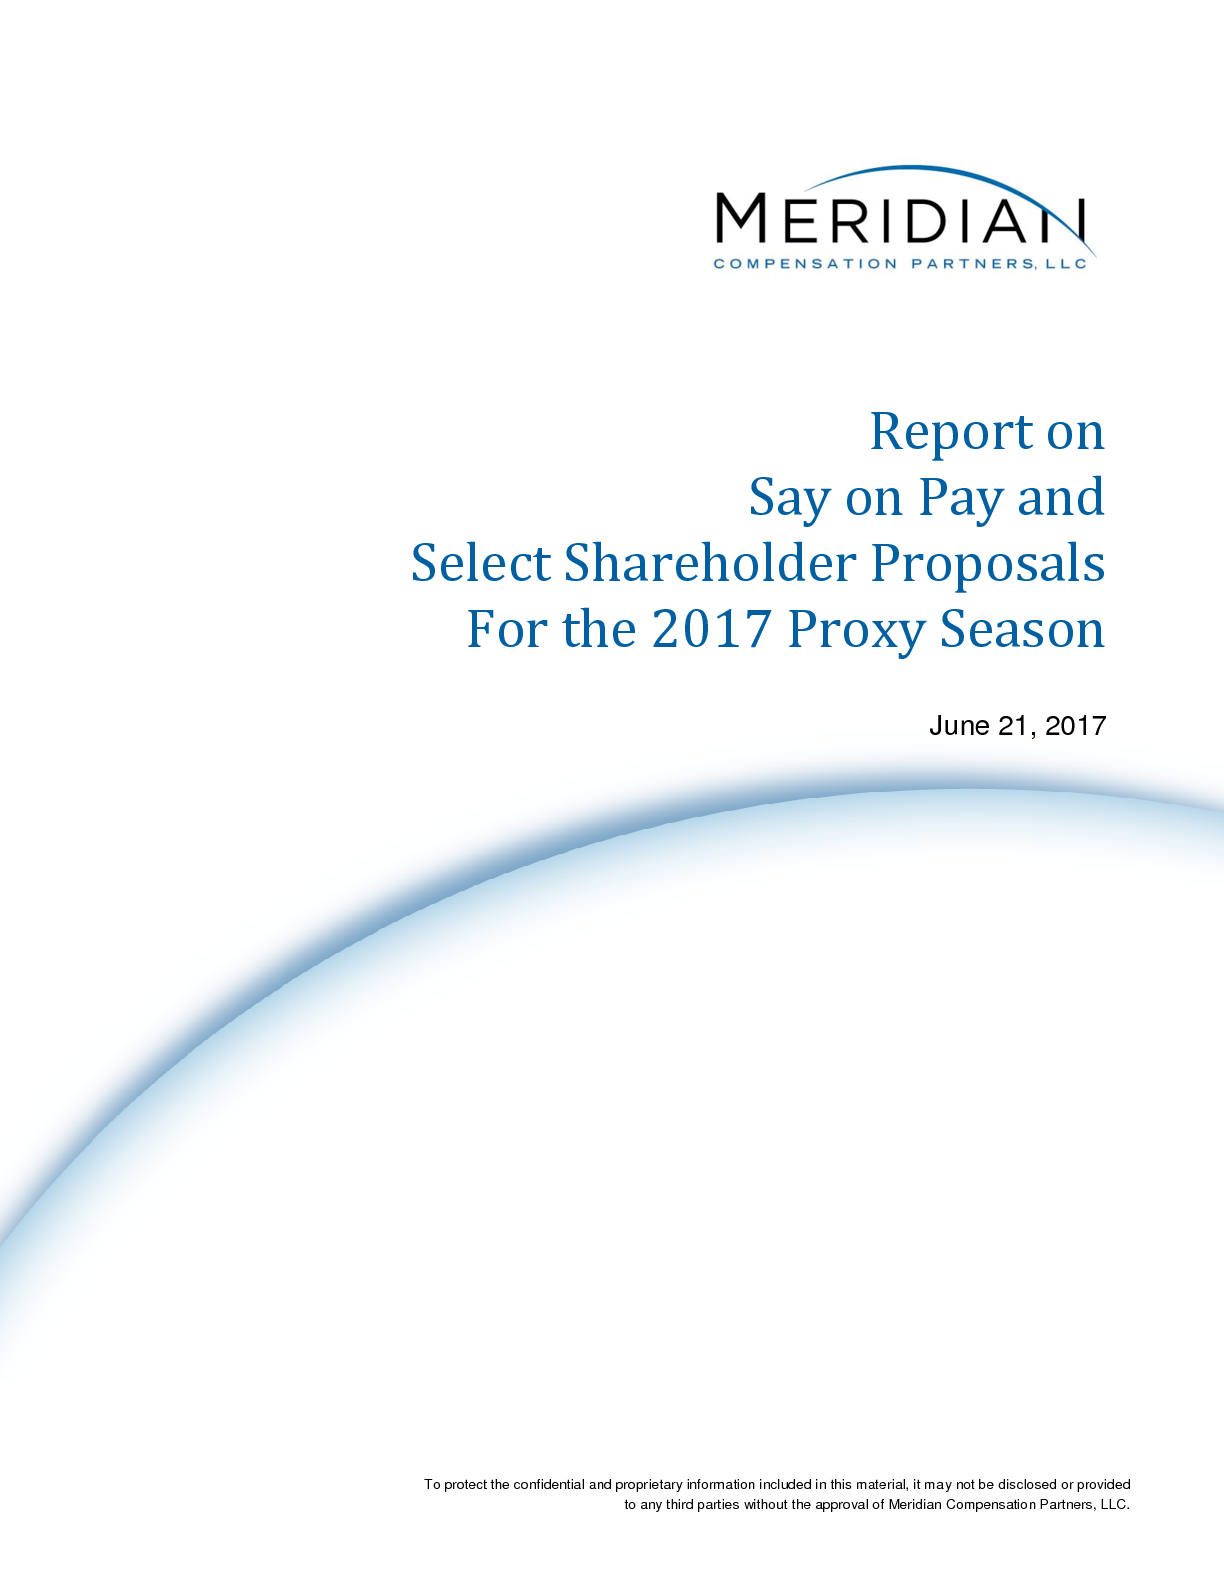 UPDATE - Report on Say on Pay and Select Shareholder Proposals for the 2017 Proxy Season (PDF)